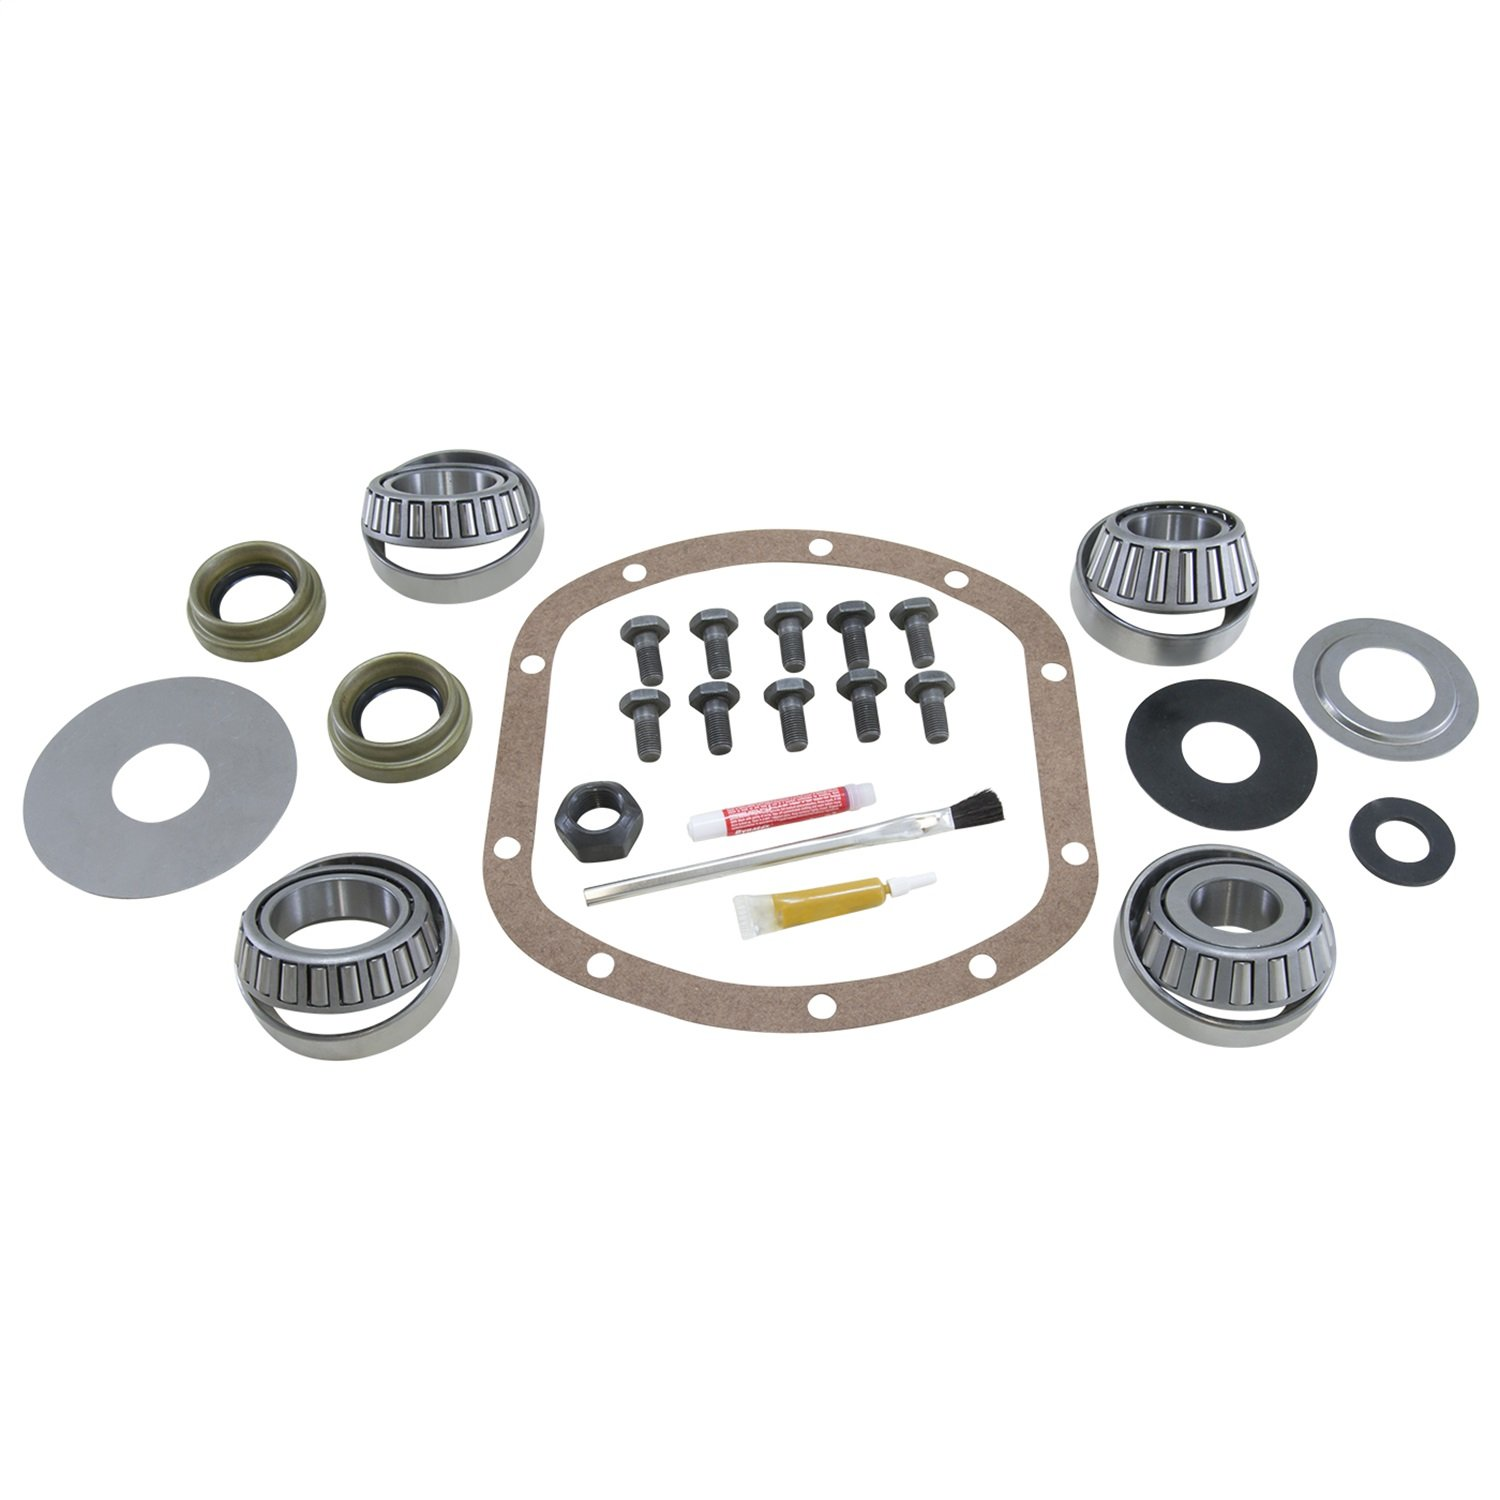 USA Standard Gear (ZK D30-F) Master Overhaul Kit for Dana 30 Front Differential by USA Standard Gear